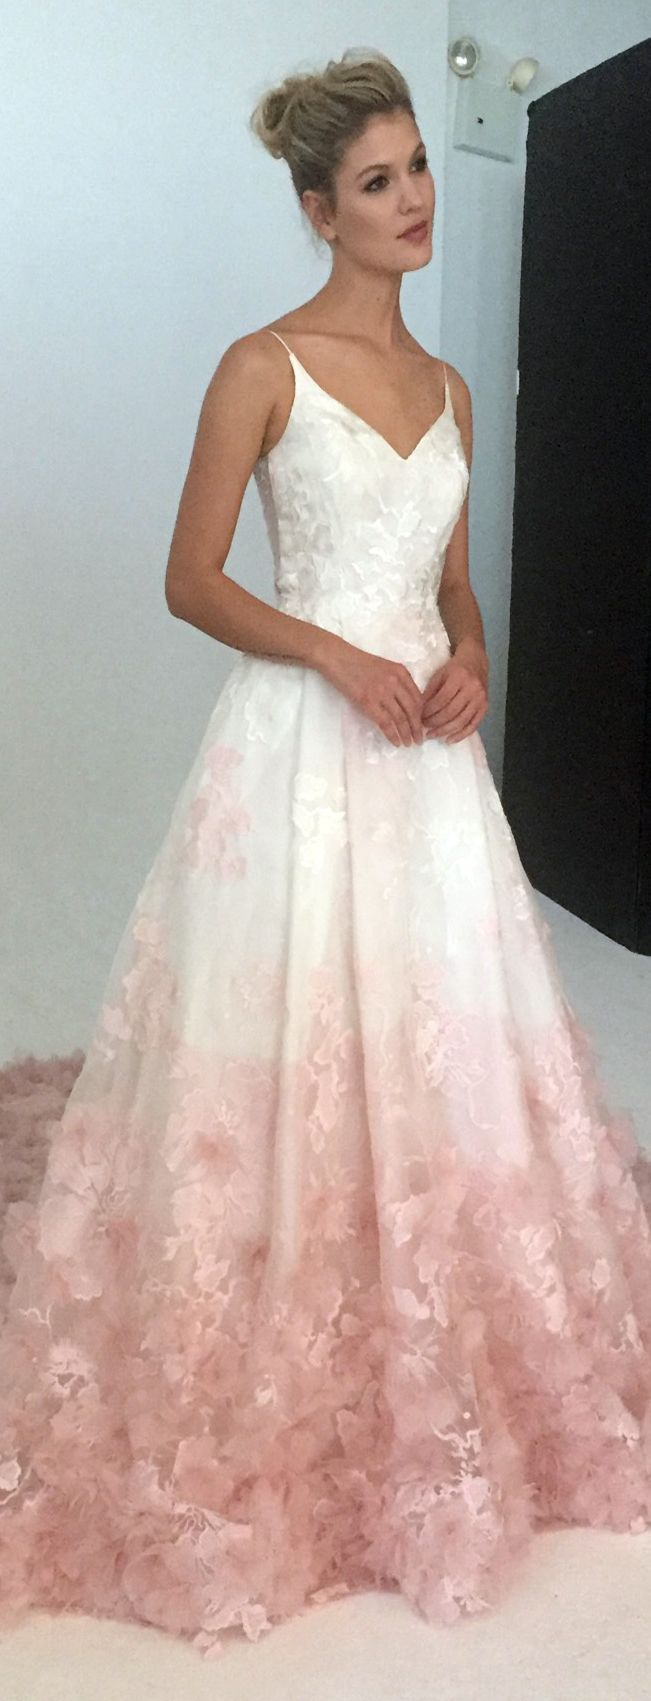 Pink Wedding Dresses blush wedding dress by kelly faetanini fall 2017 ZFYQLBG